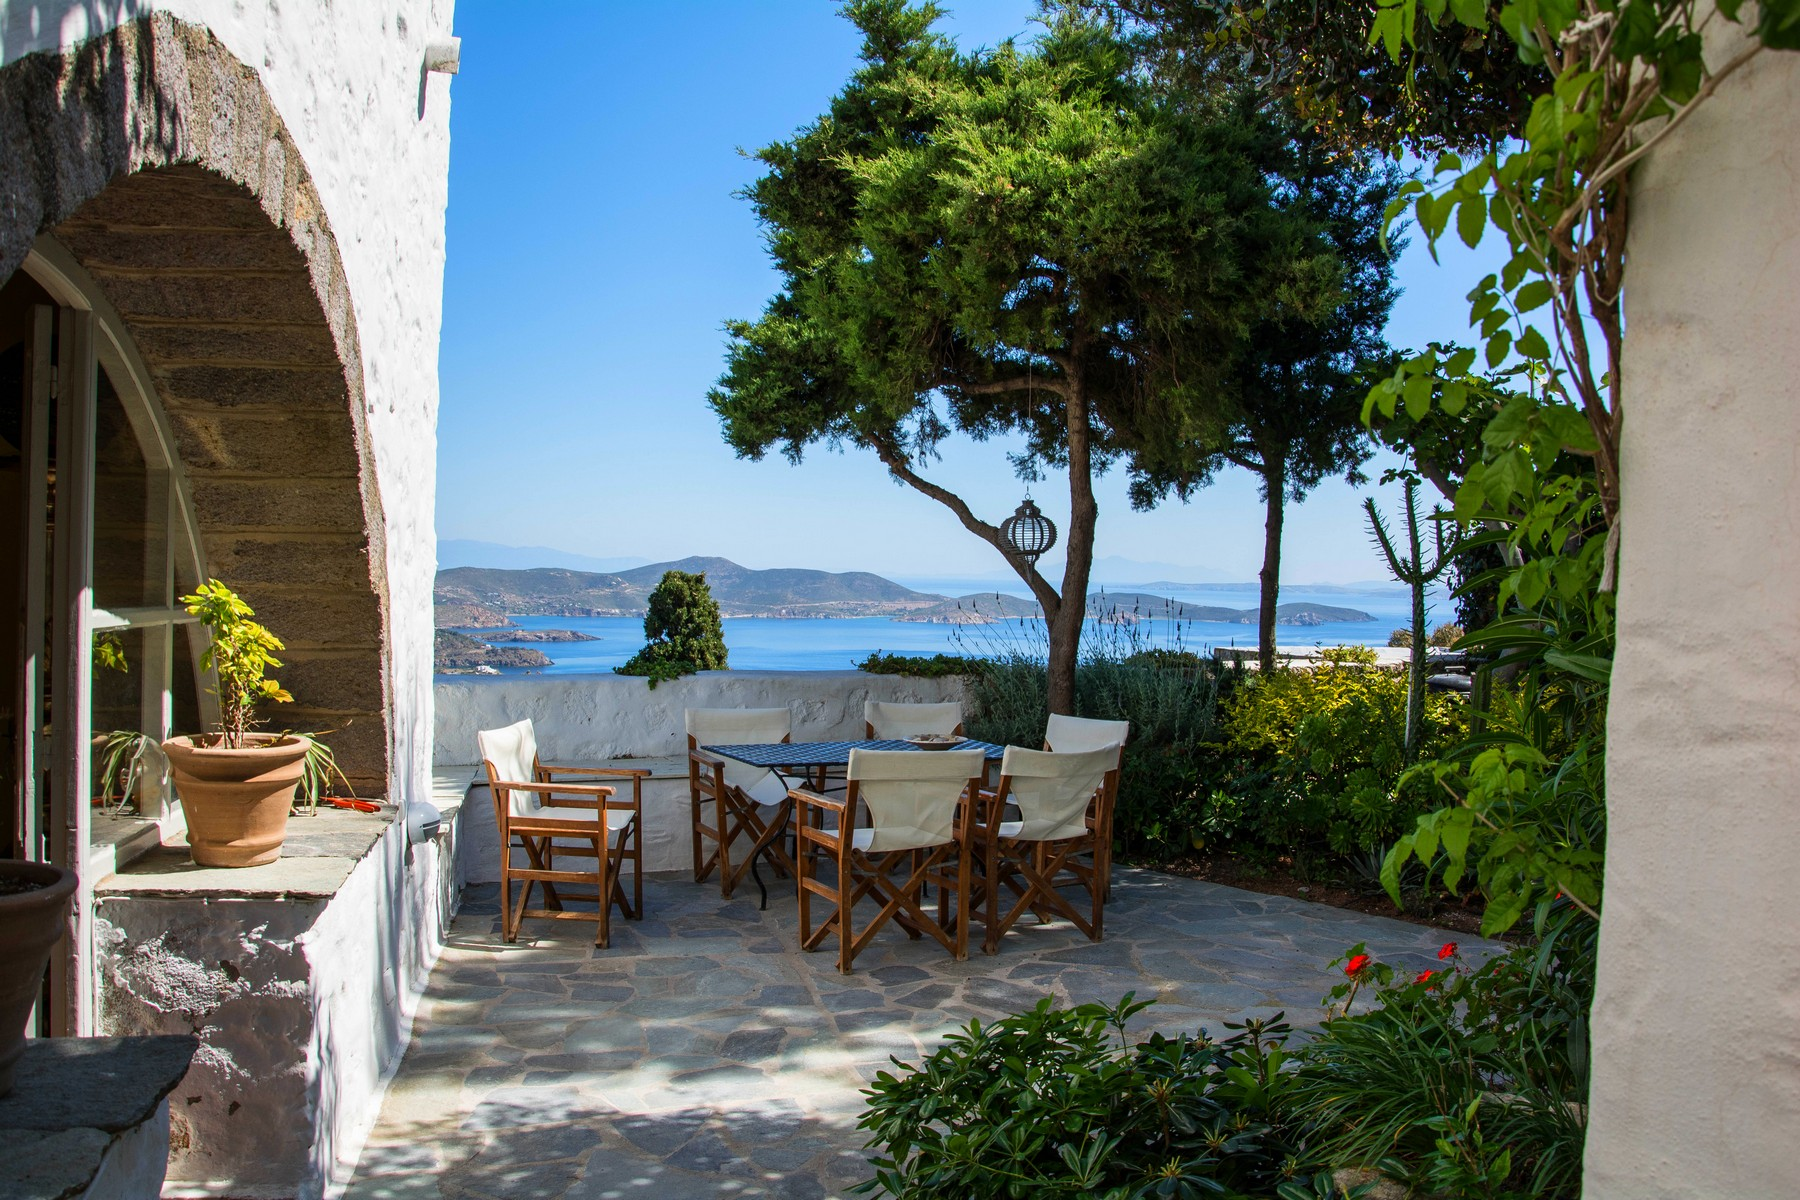 Single Family Home for Sale at Panorama Chora Panorama Other Southern Aegean, Southern Aegean, 85500 Greece